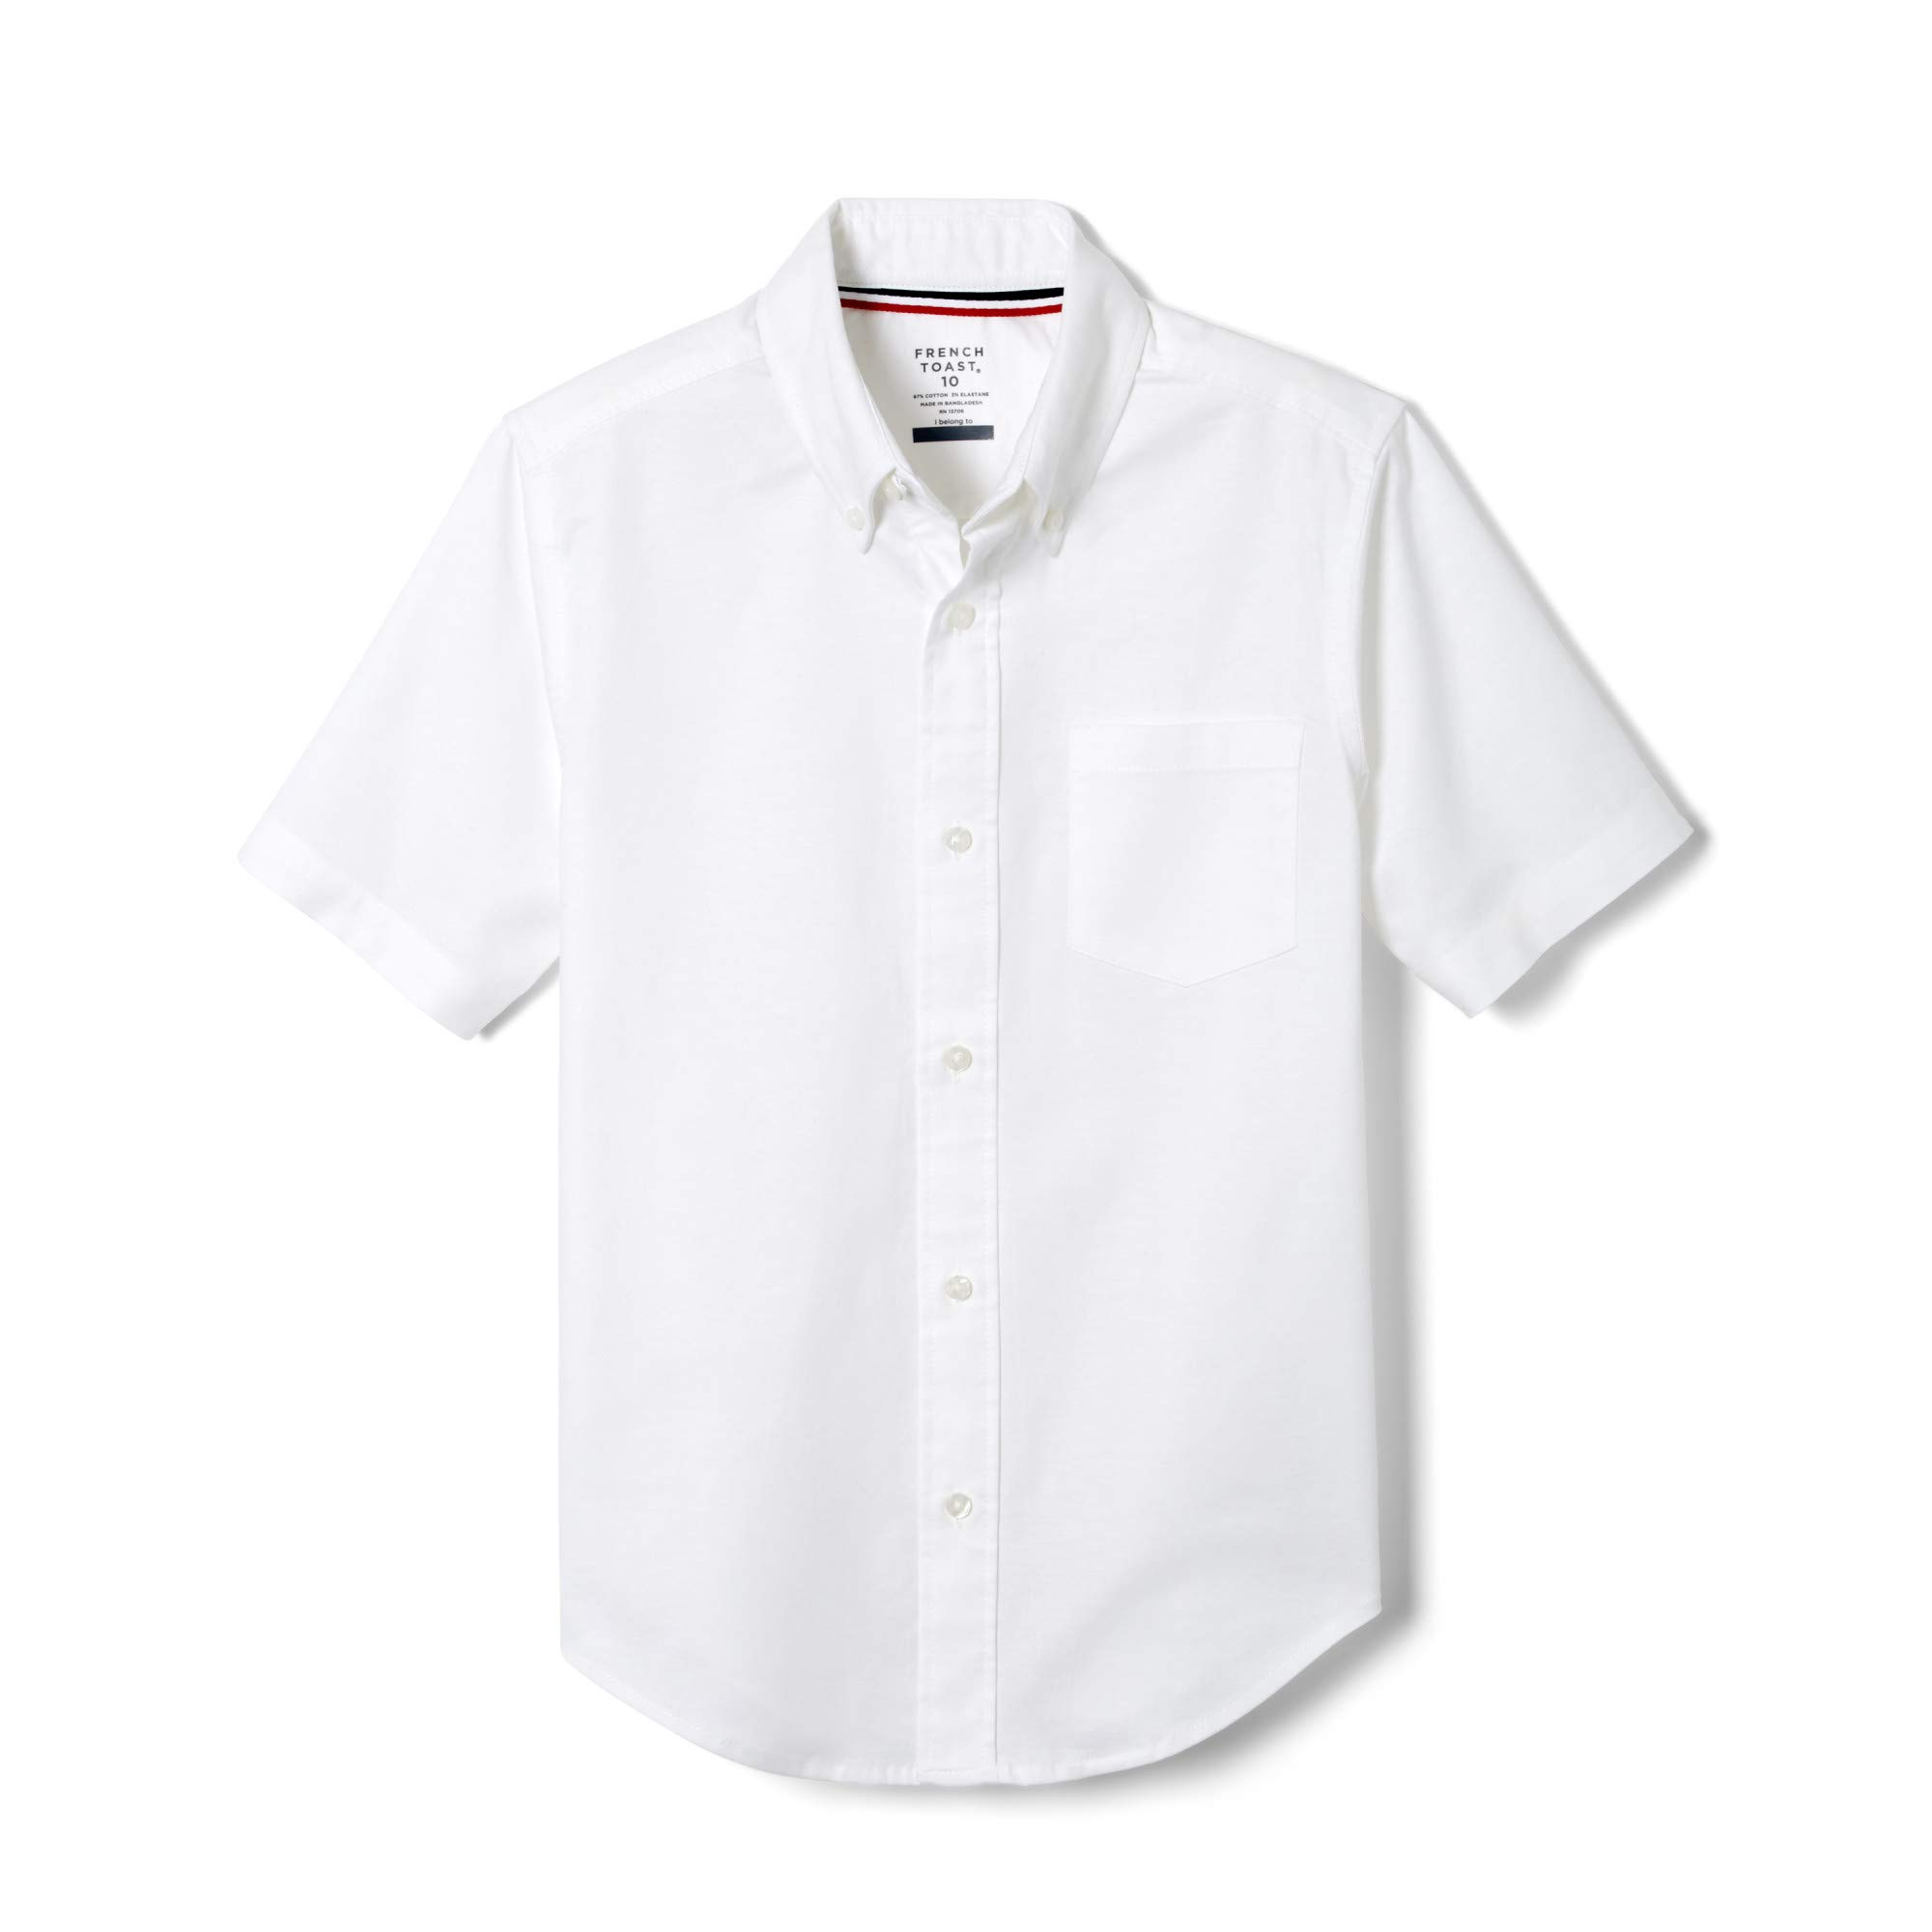 French Toast Boys' Big Short Sleeve Oxford Dress Shirt (Standard & Husky), White Stretch, 16 by French Toast (Image #1)